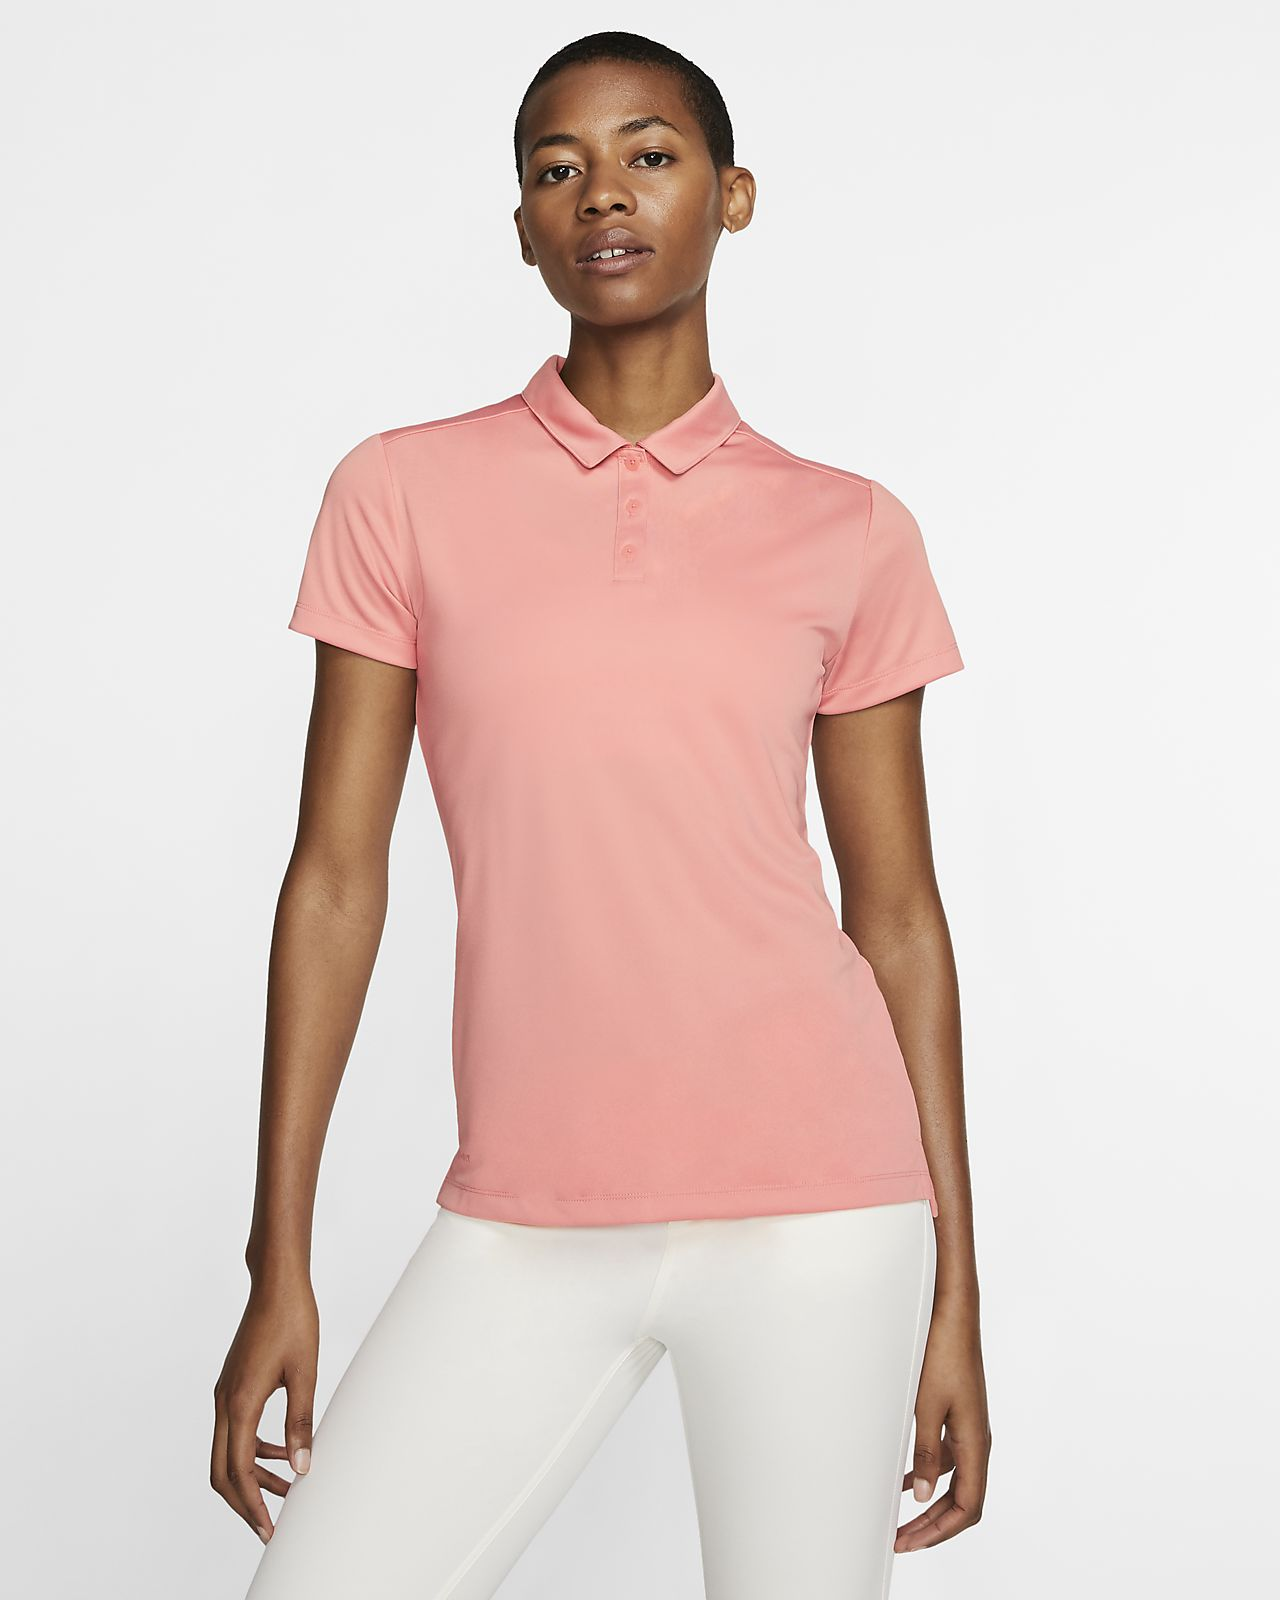 ebafaebcf181a Nike Dri-FIT Women's Golf Polo. Nike.com